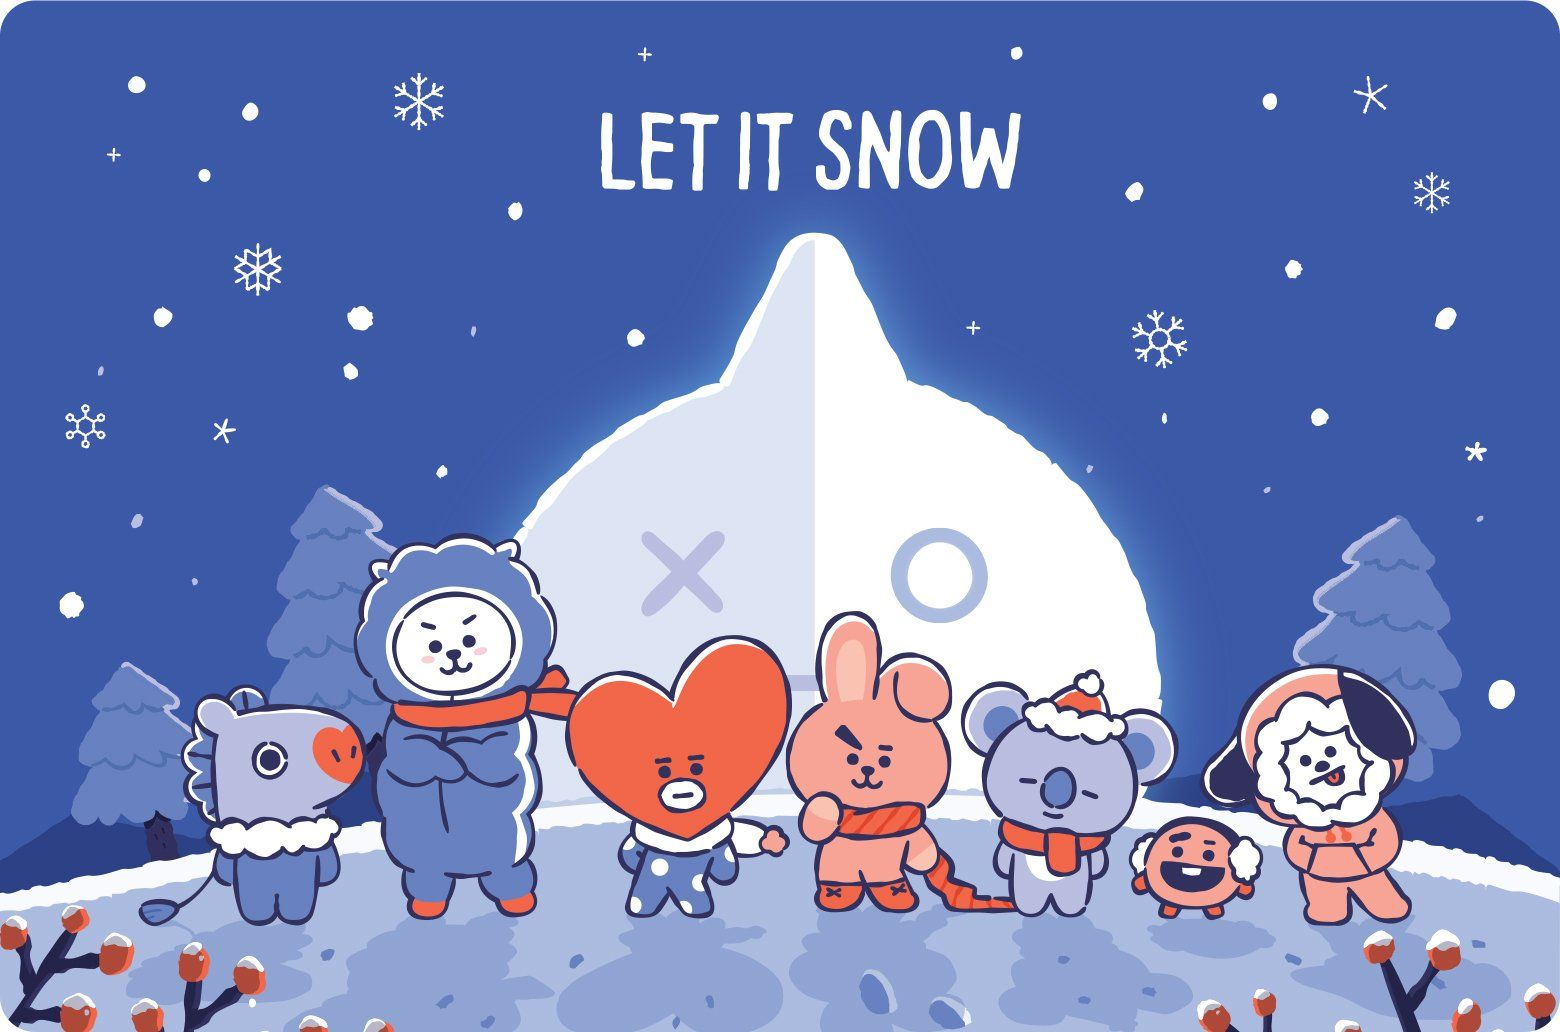 Merry Christmas In Advance From Me On Behalf Of Bt21 Merry Christmas Wallpaper Bts Christmas Winter Wallpaper